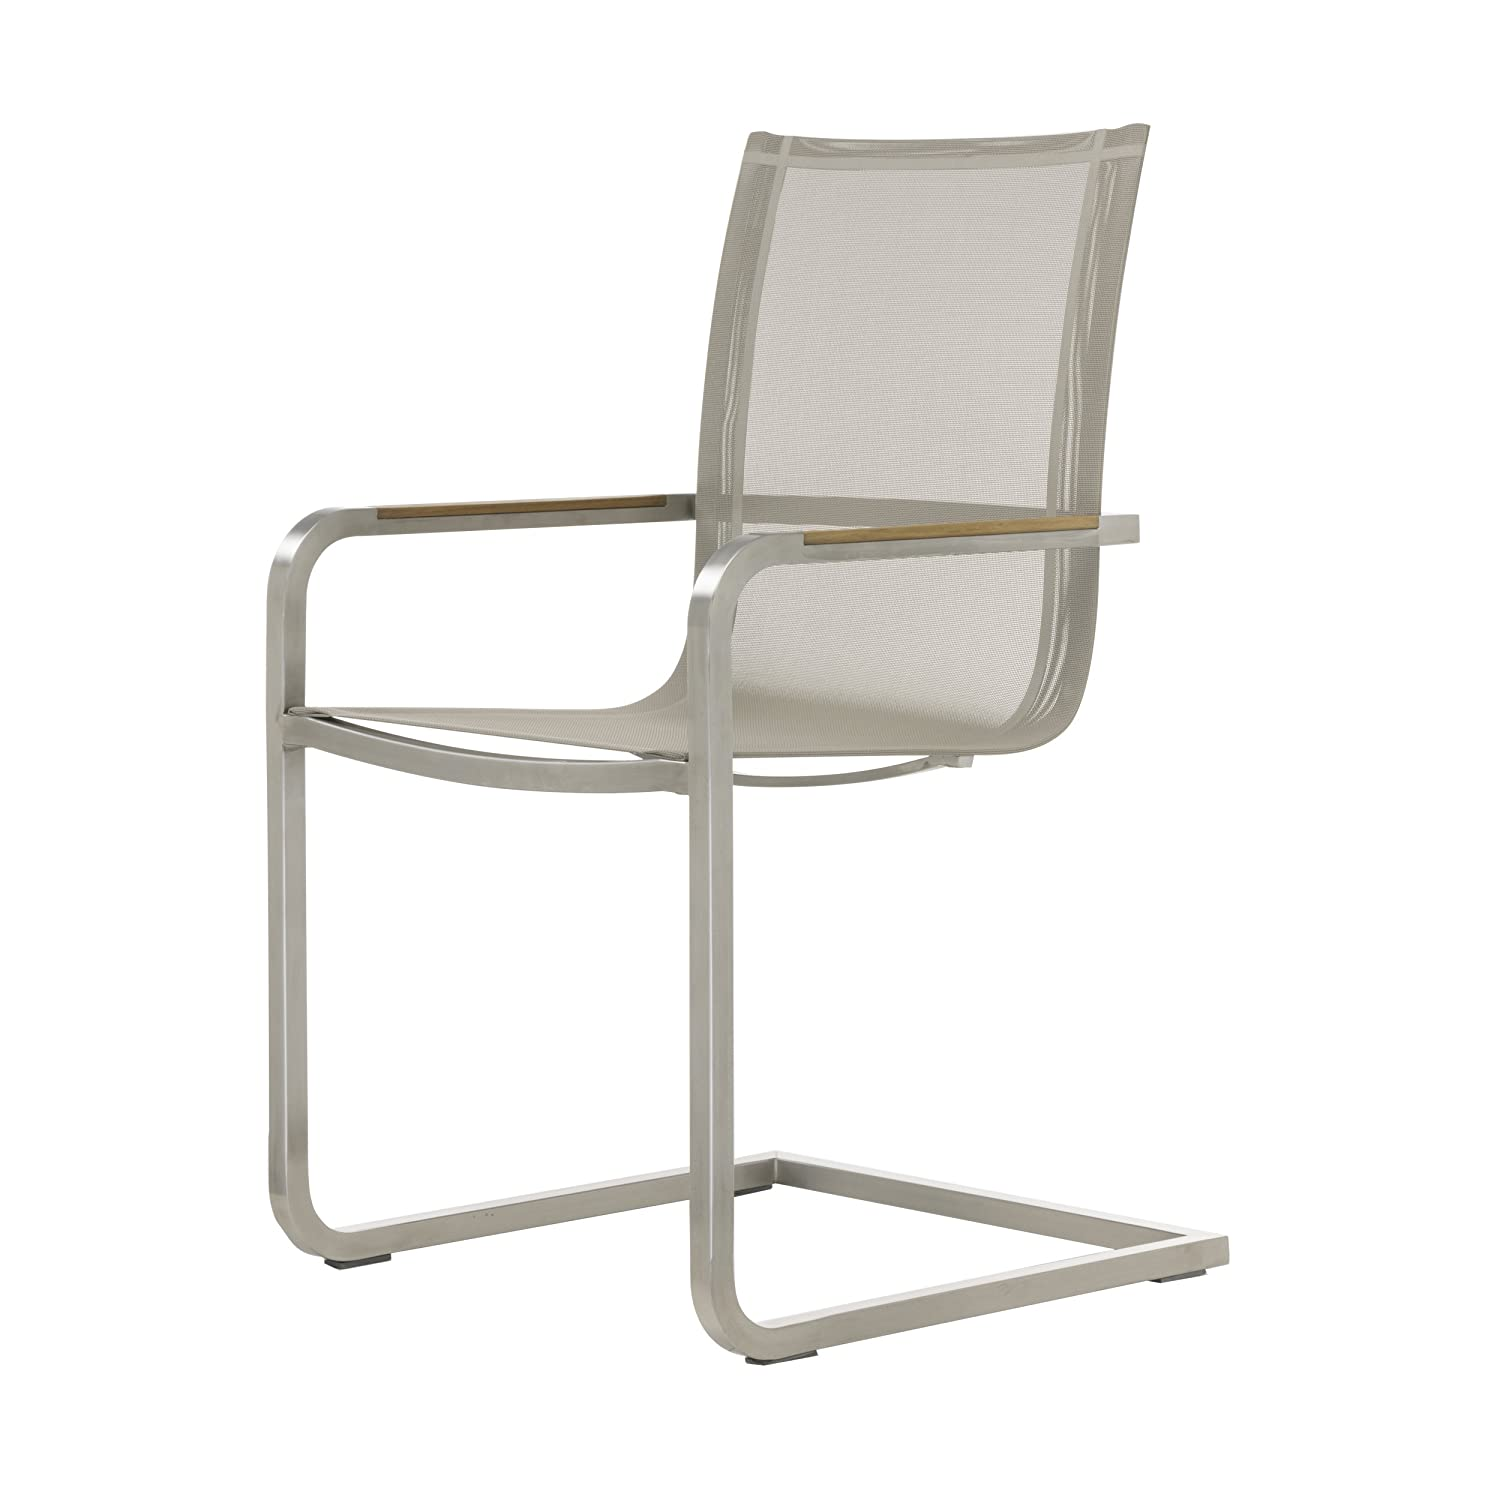 Lux Freischwinger Sessel taupe